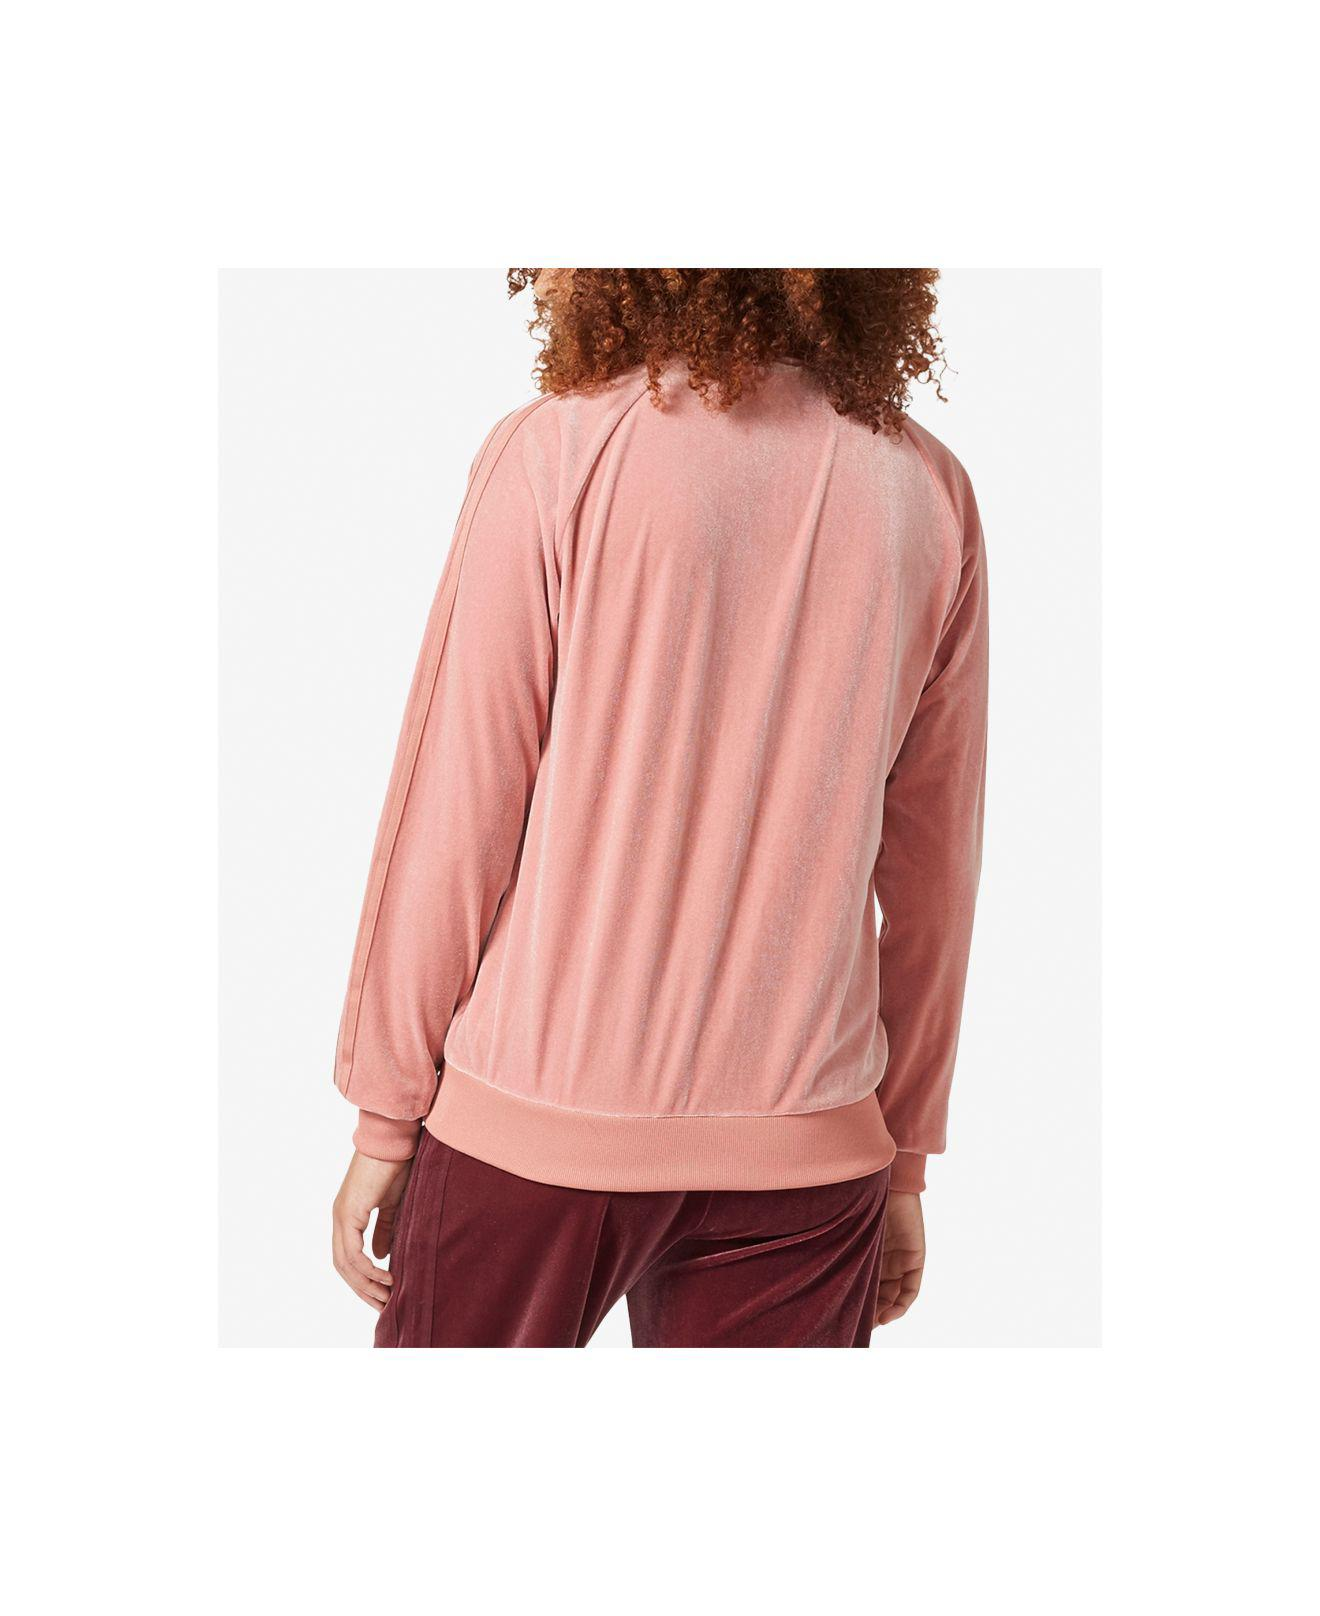 8fbe8a31e6d Lyst - adidas Originals Velvet Vibes Track Jacket in Pink